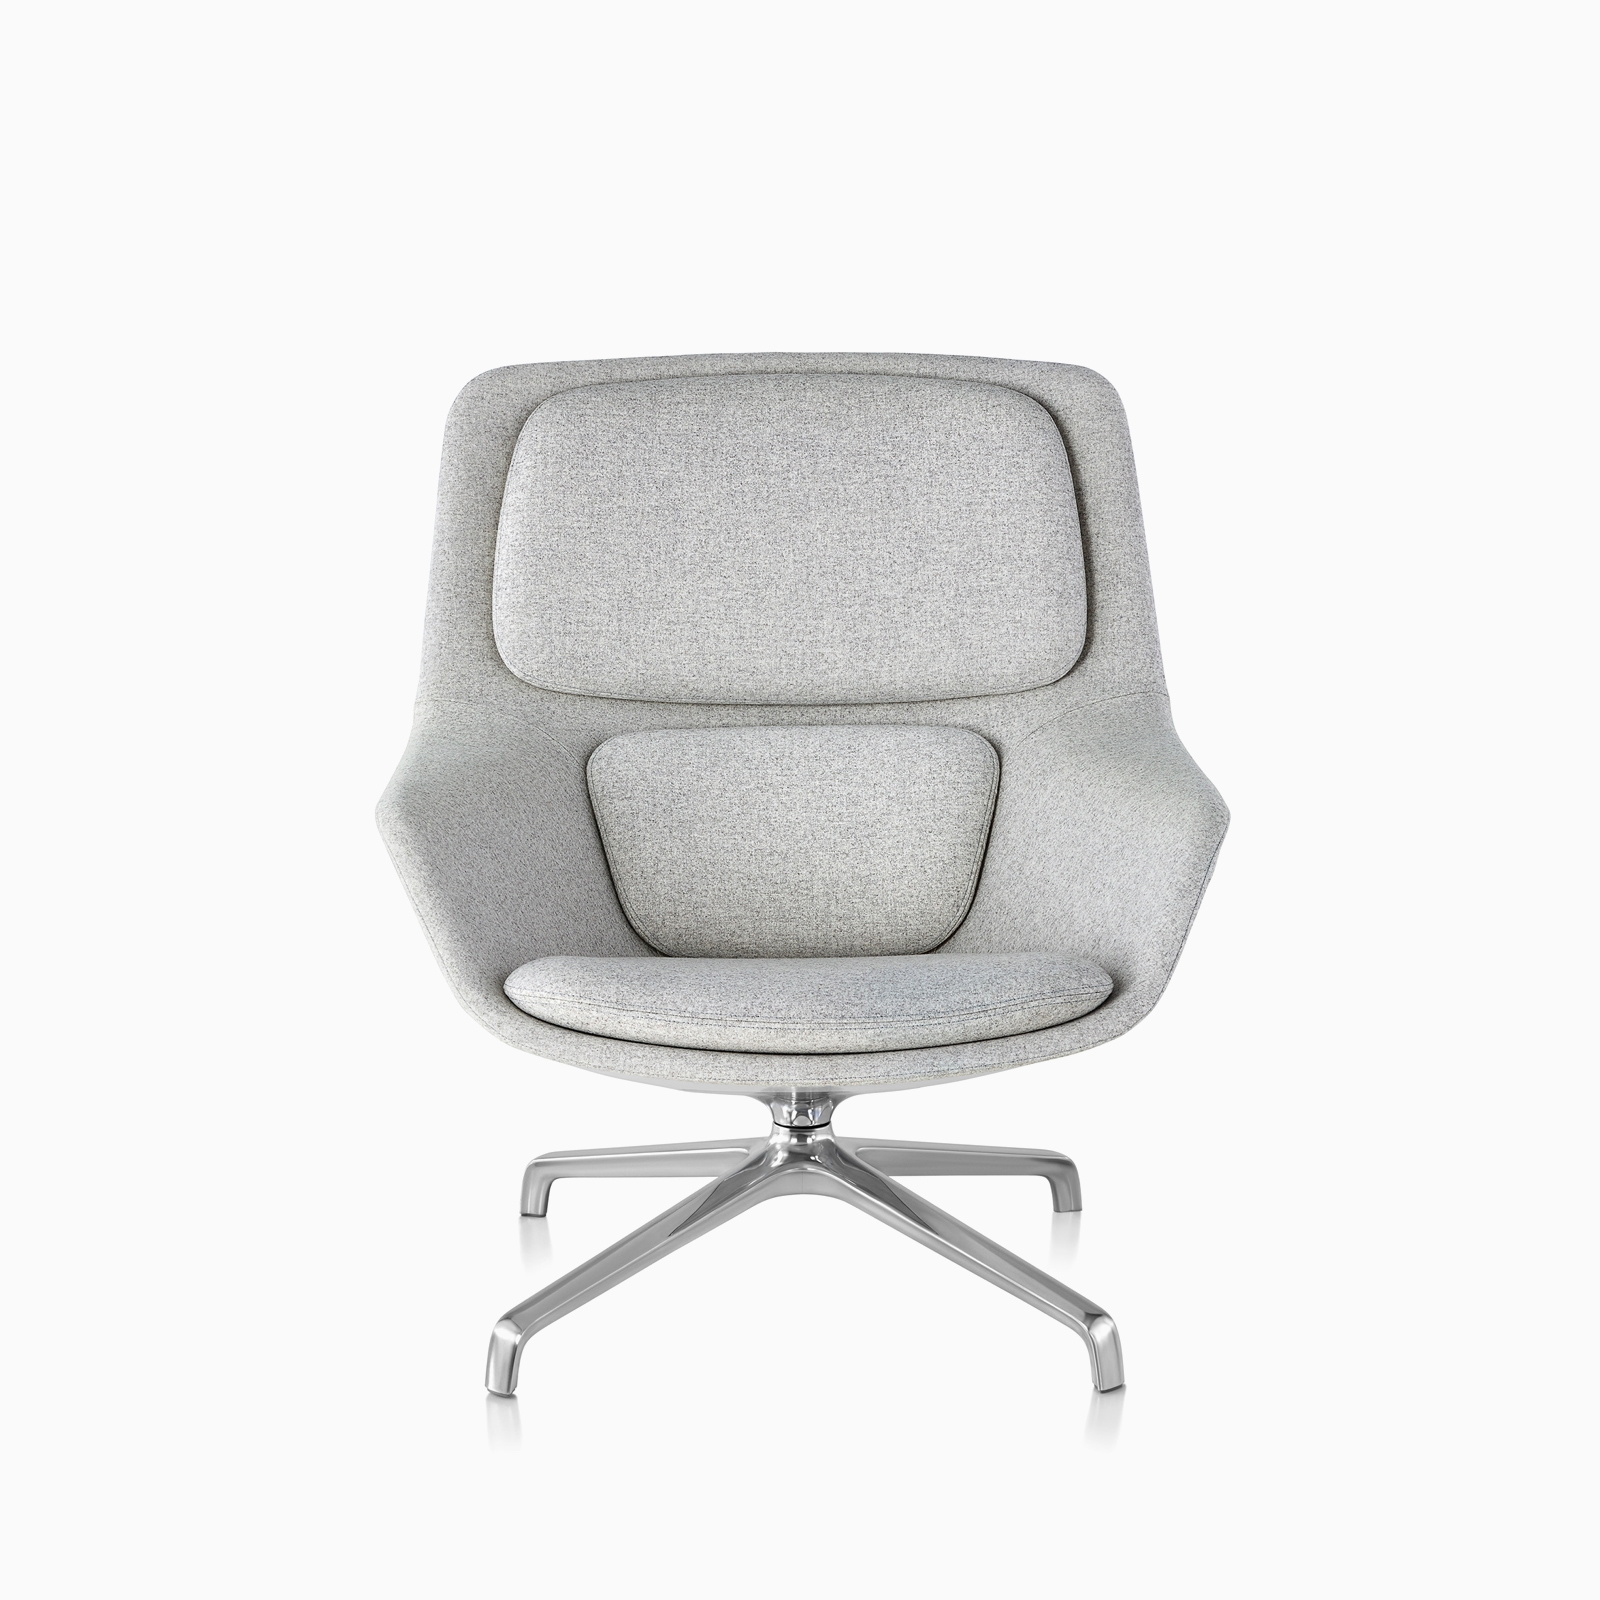 A front view of a light gray Striad Lounge Chair with silve legs.